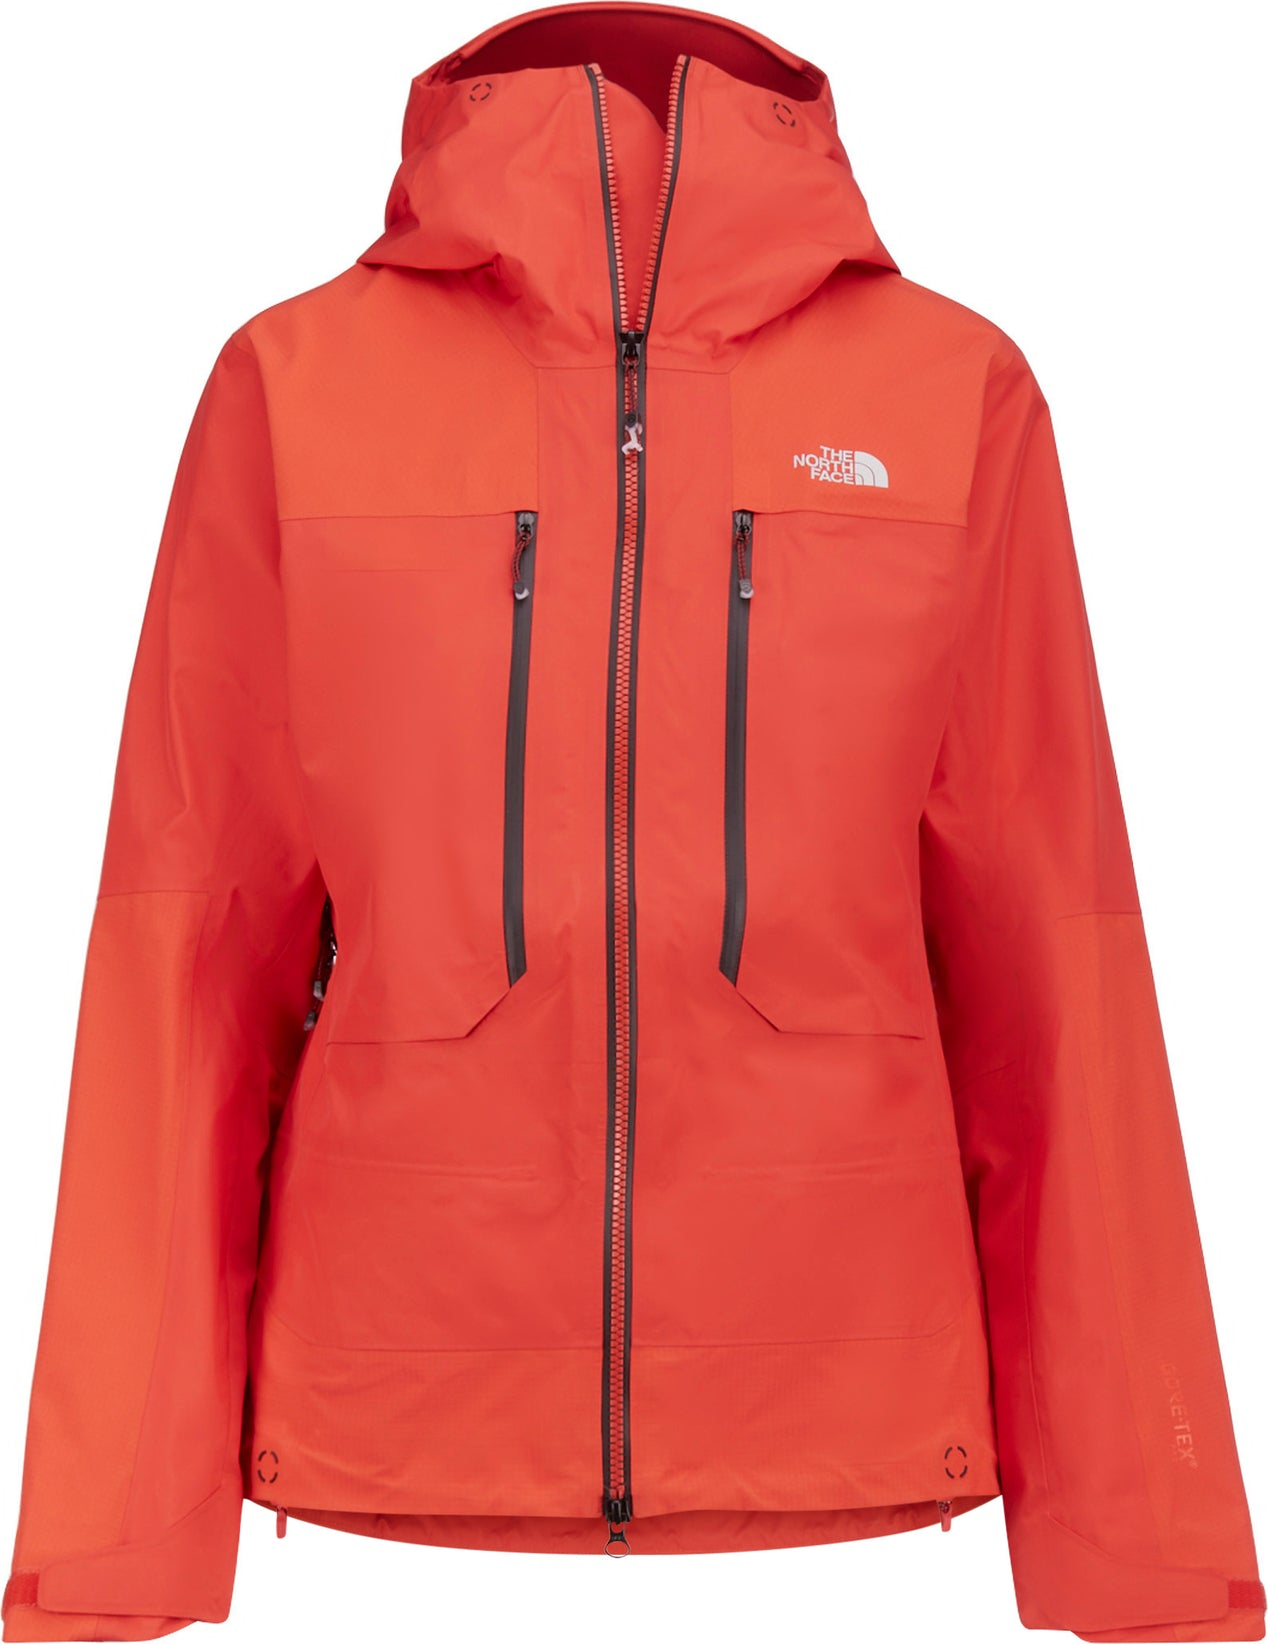 979f7064b The North Face Women's Summit L5 Gore-Tex® Pro Jacket